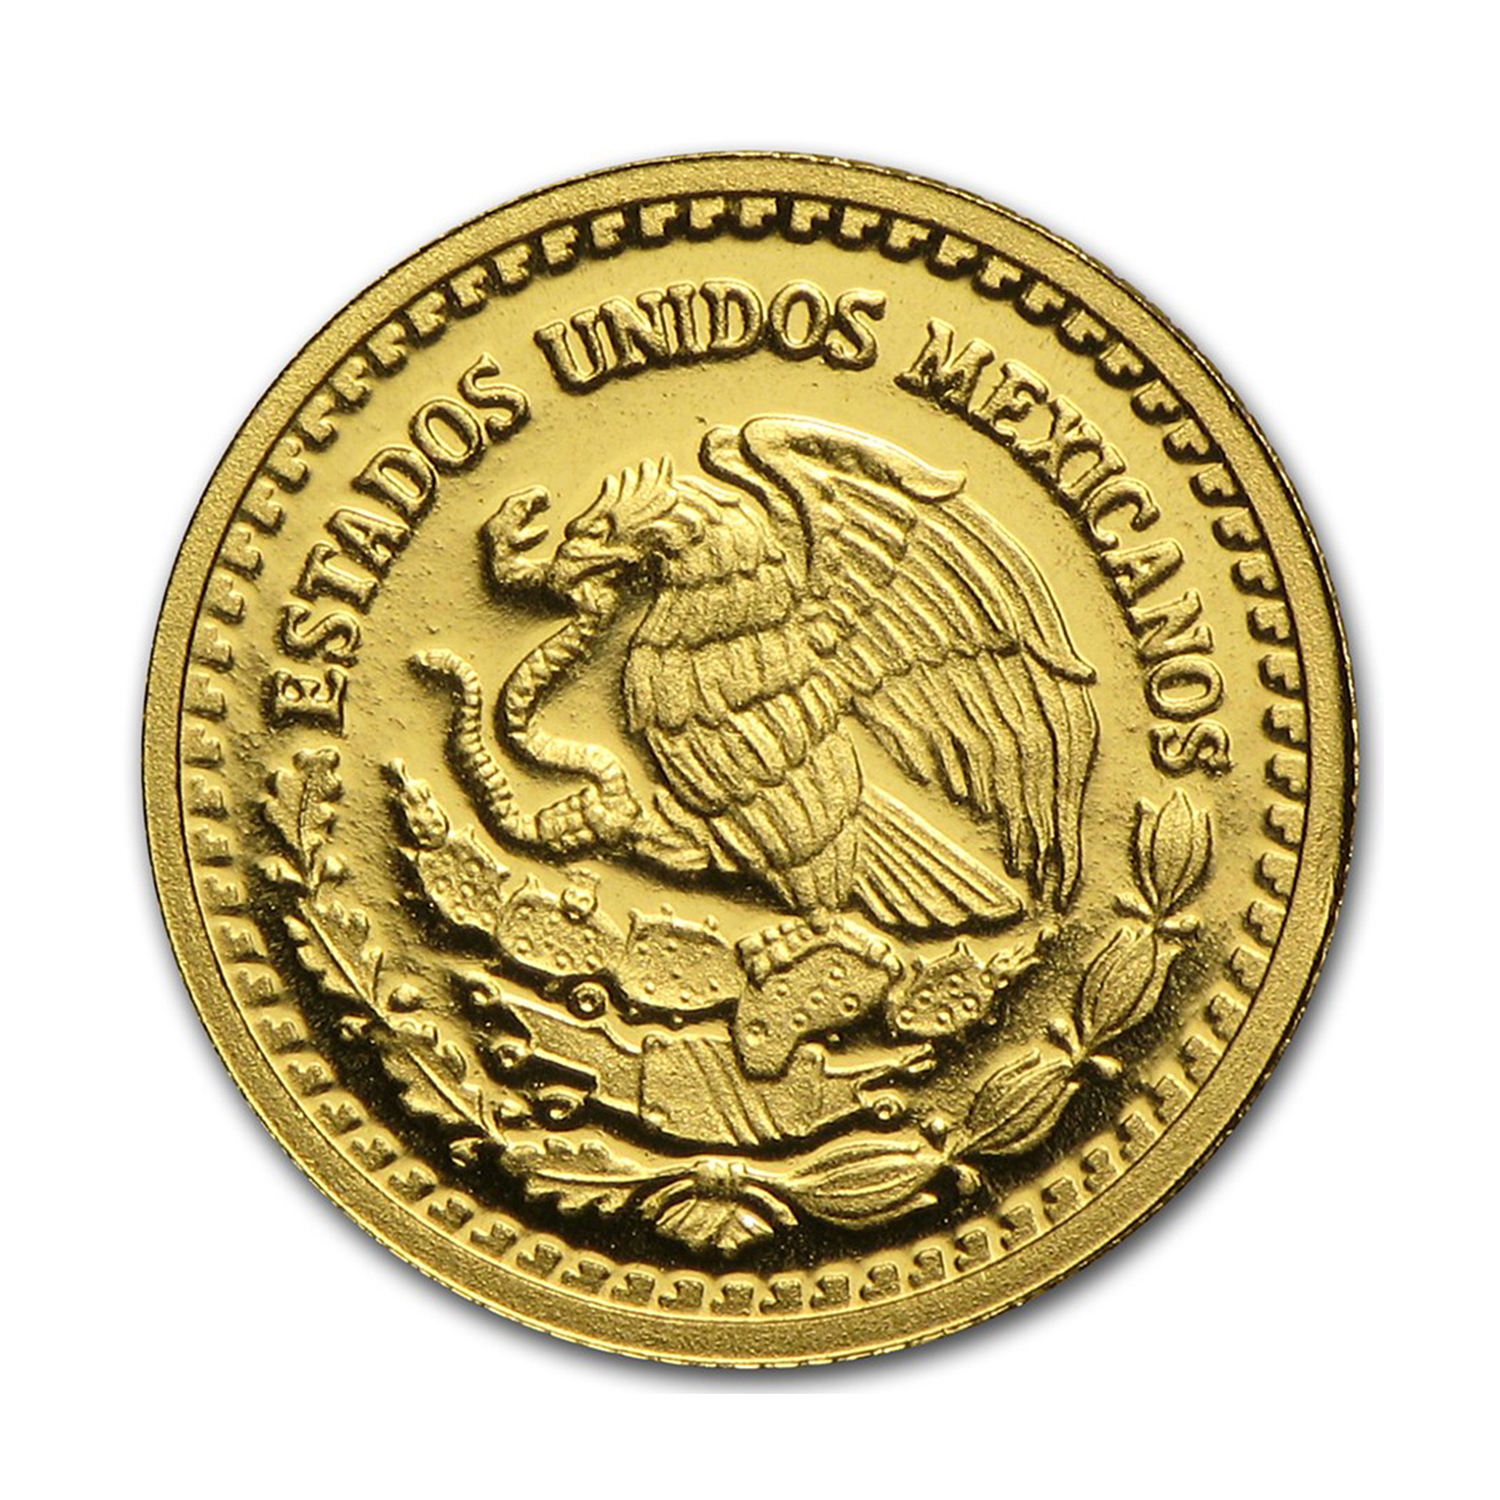 2016 Mexico 1/20 oz Proof Gold Libertad